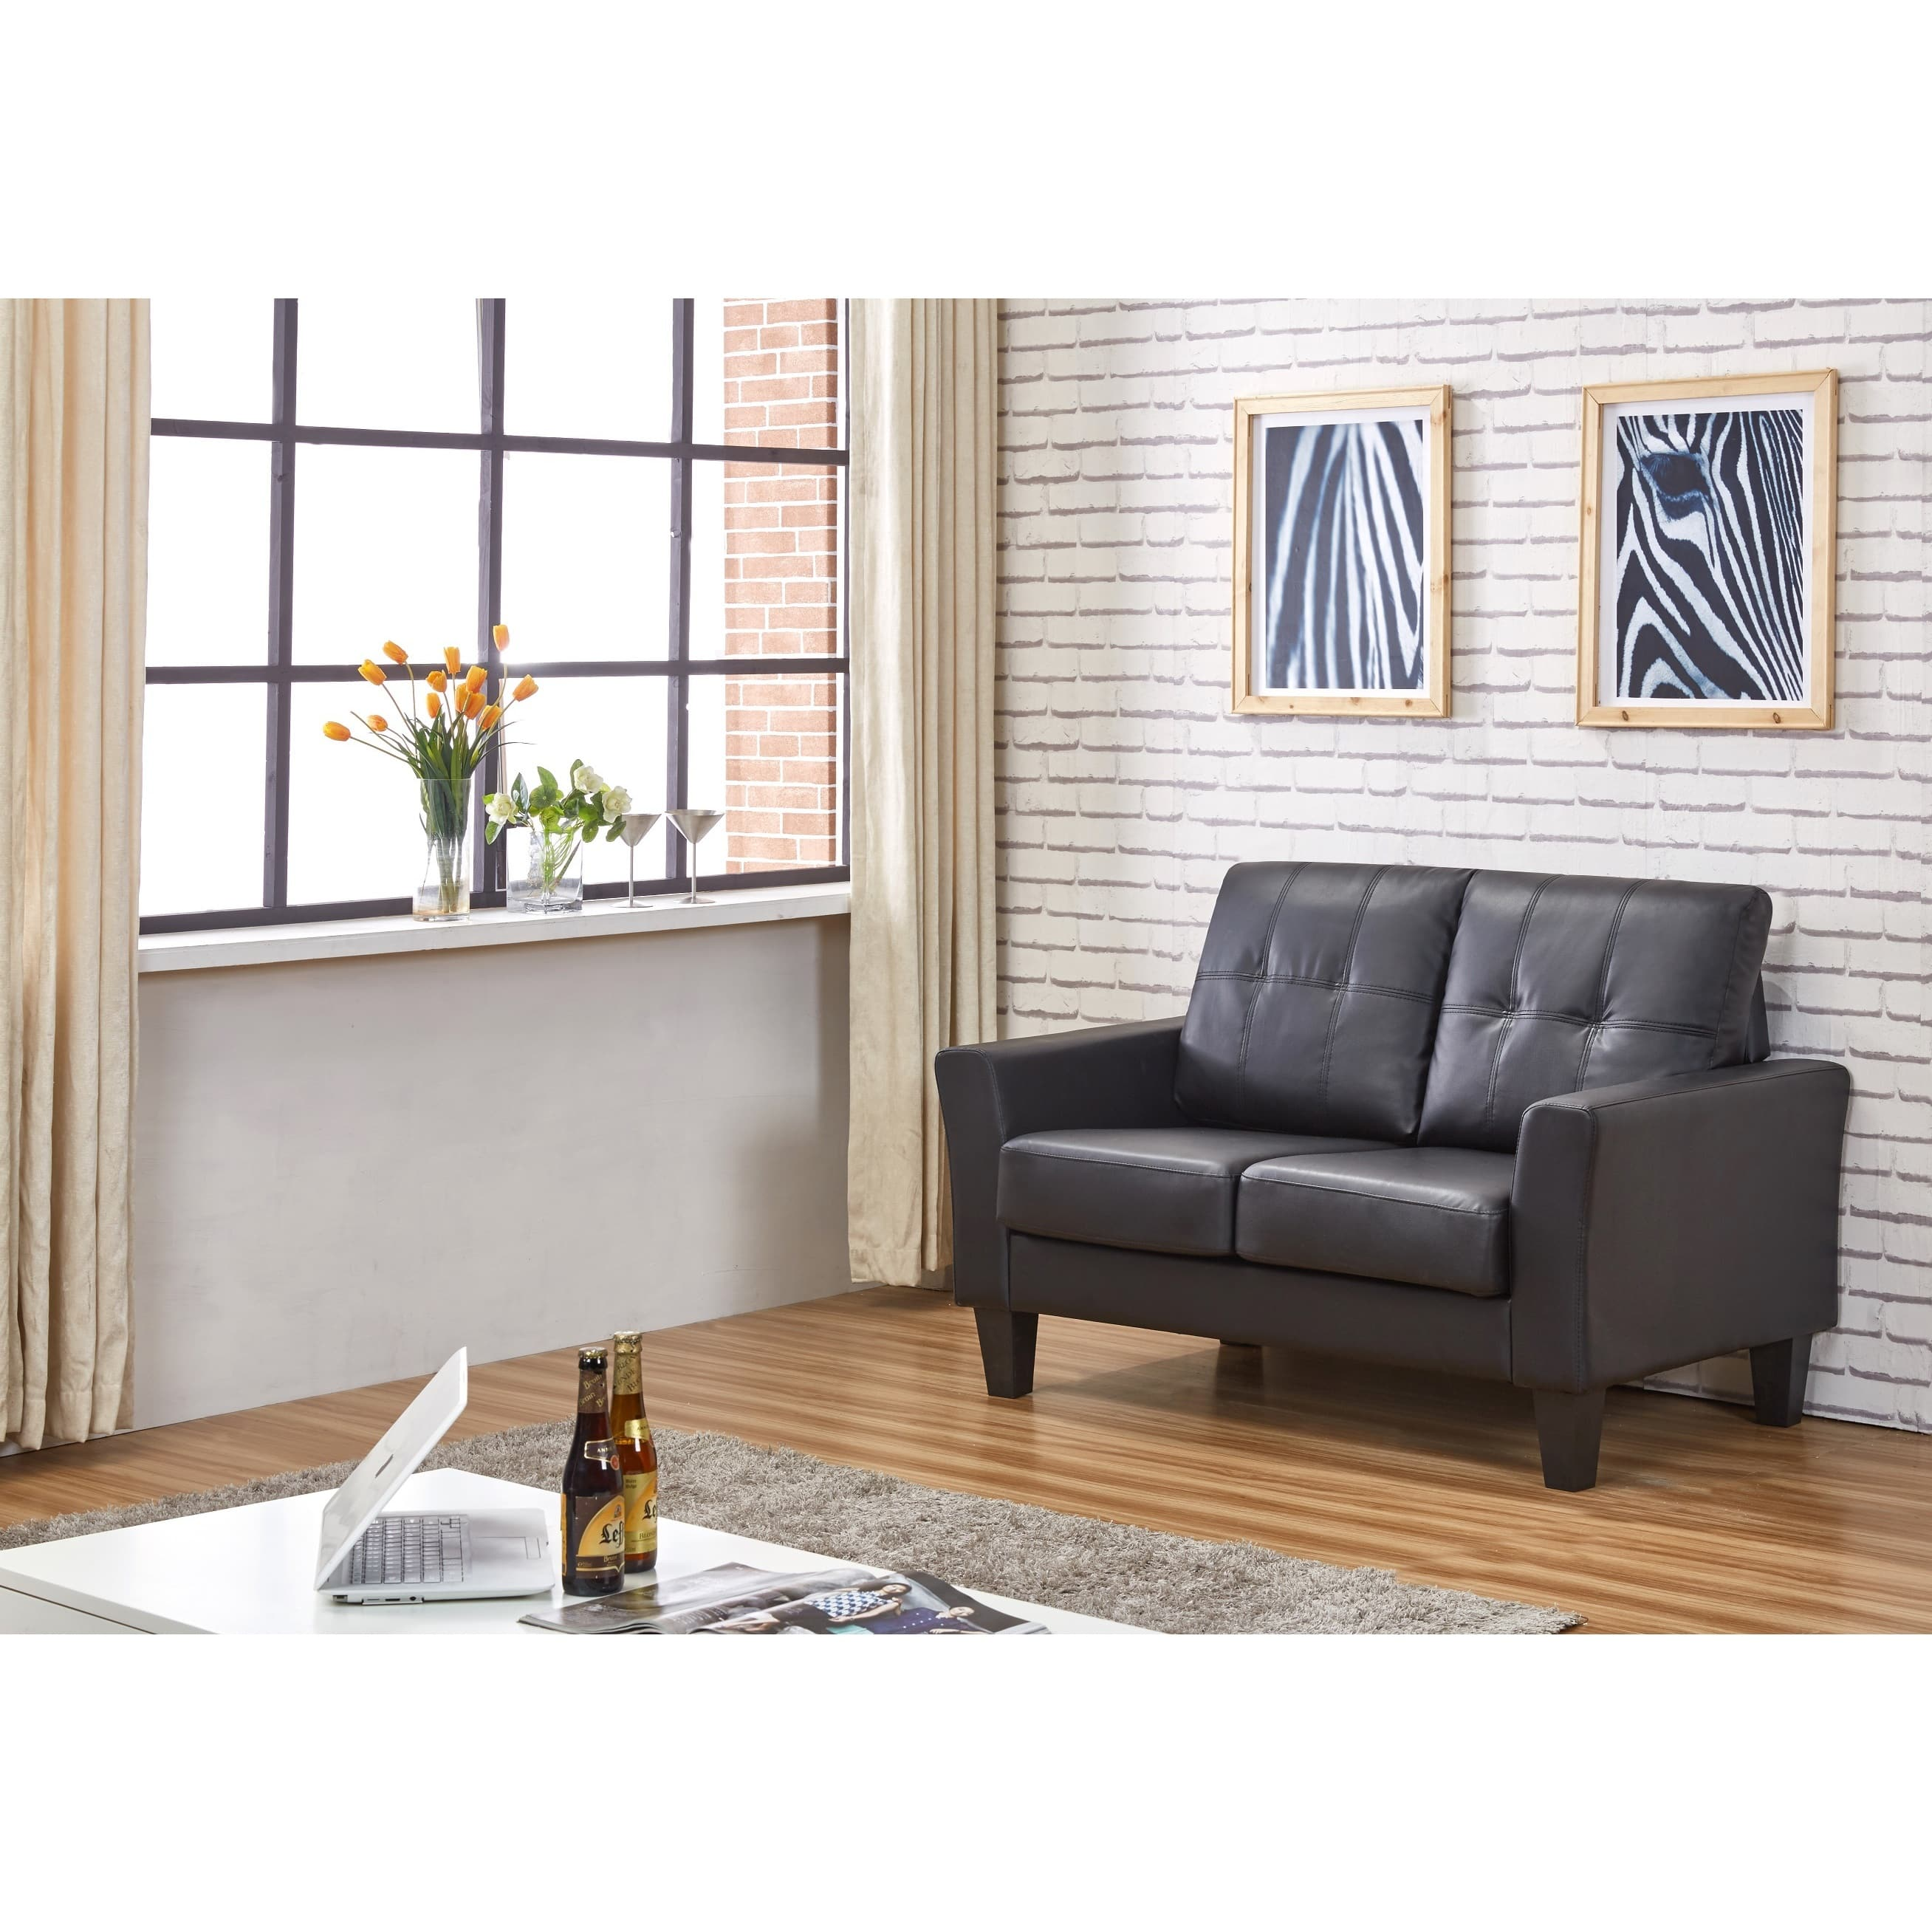 Sofas Couches Loveseats For Less